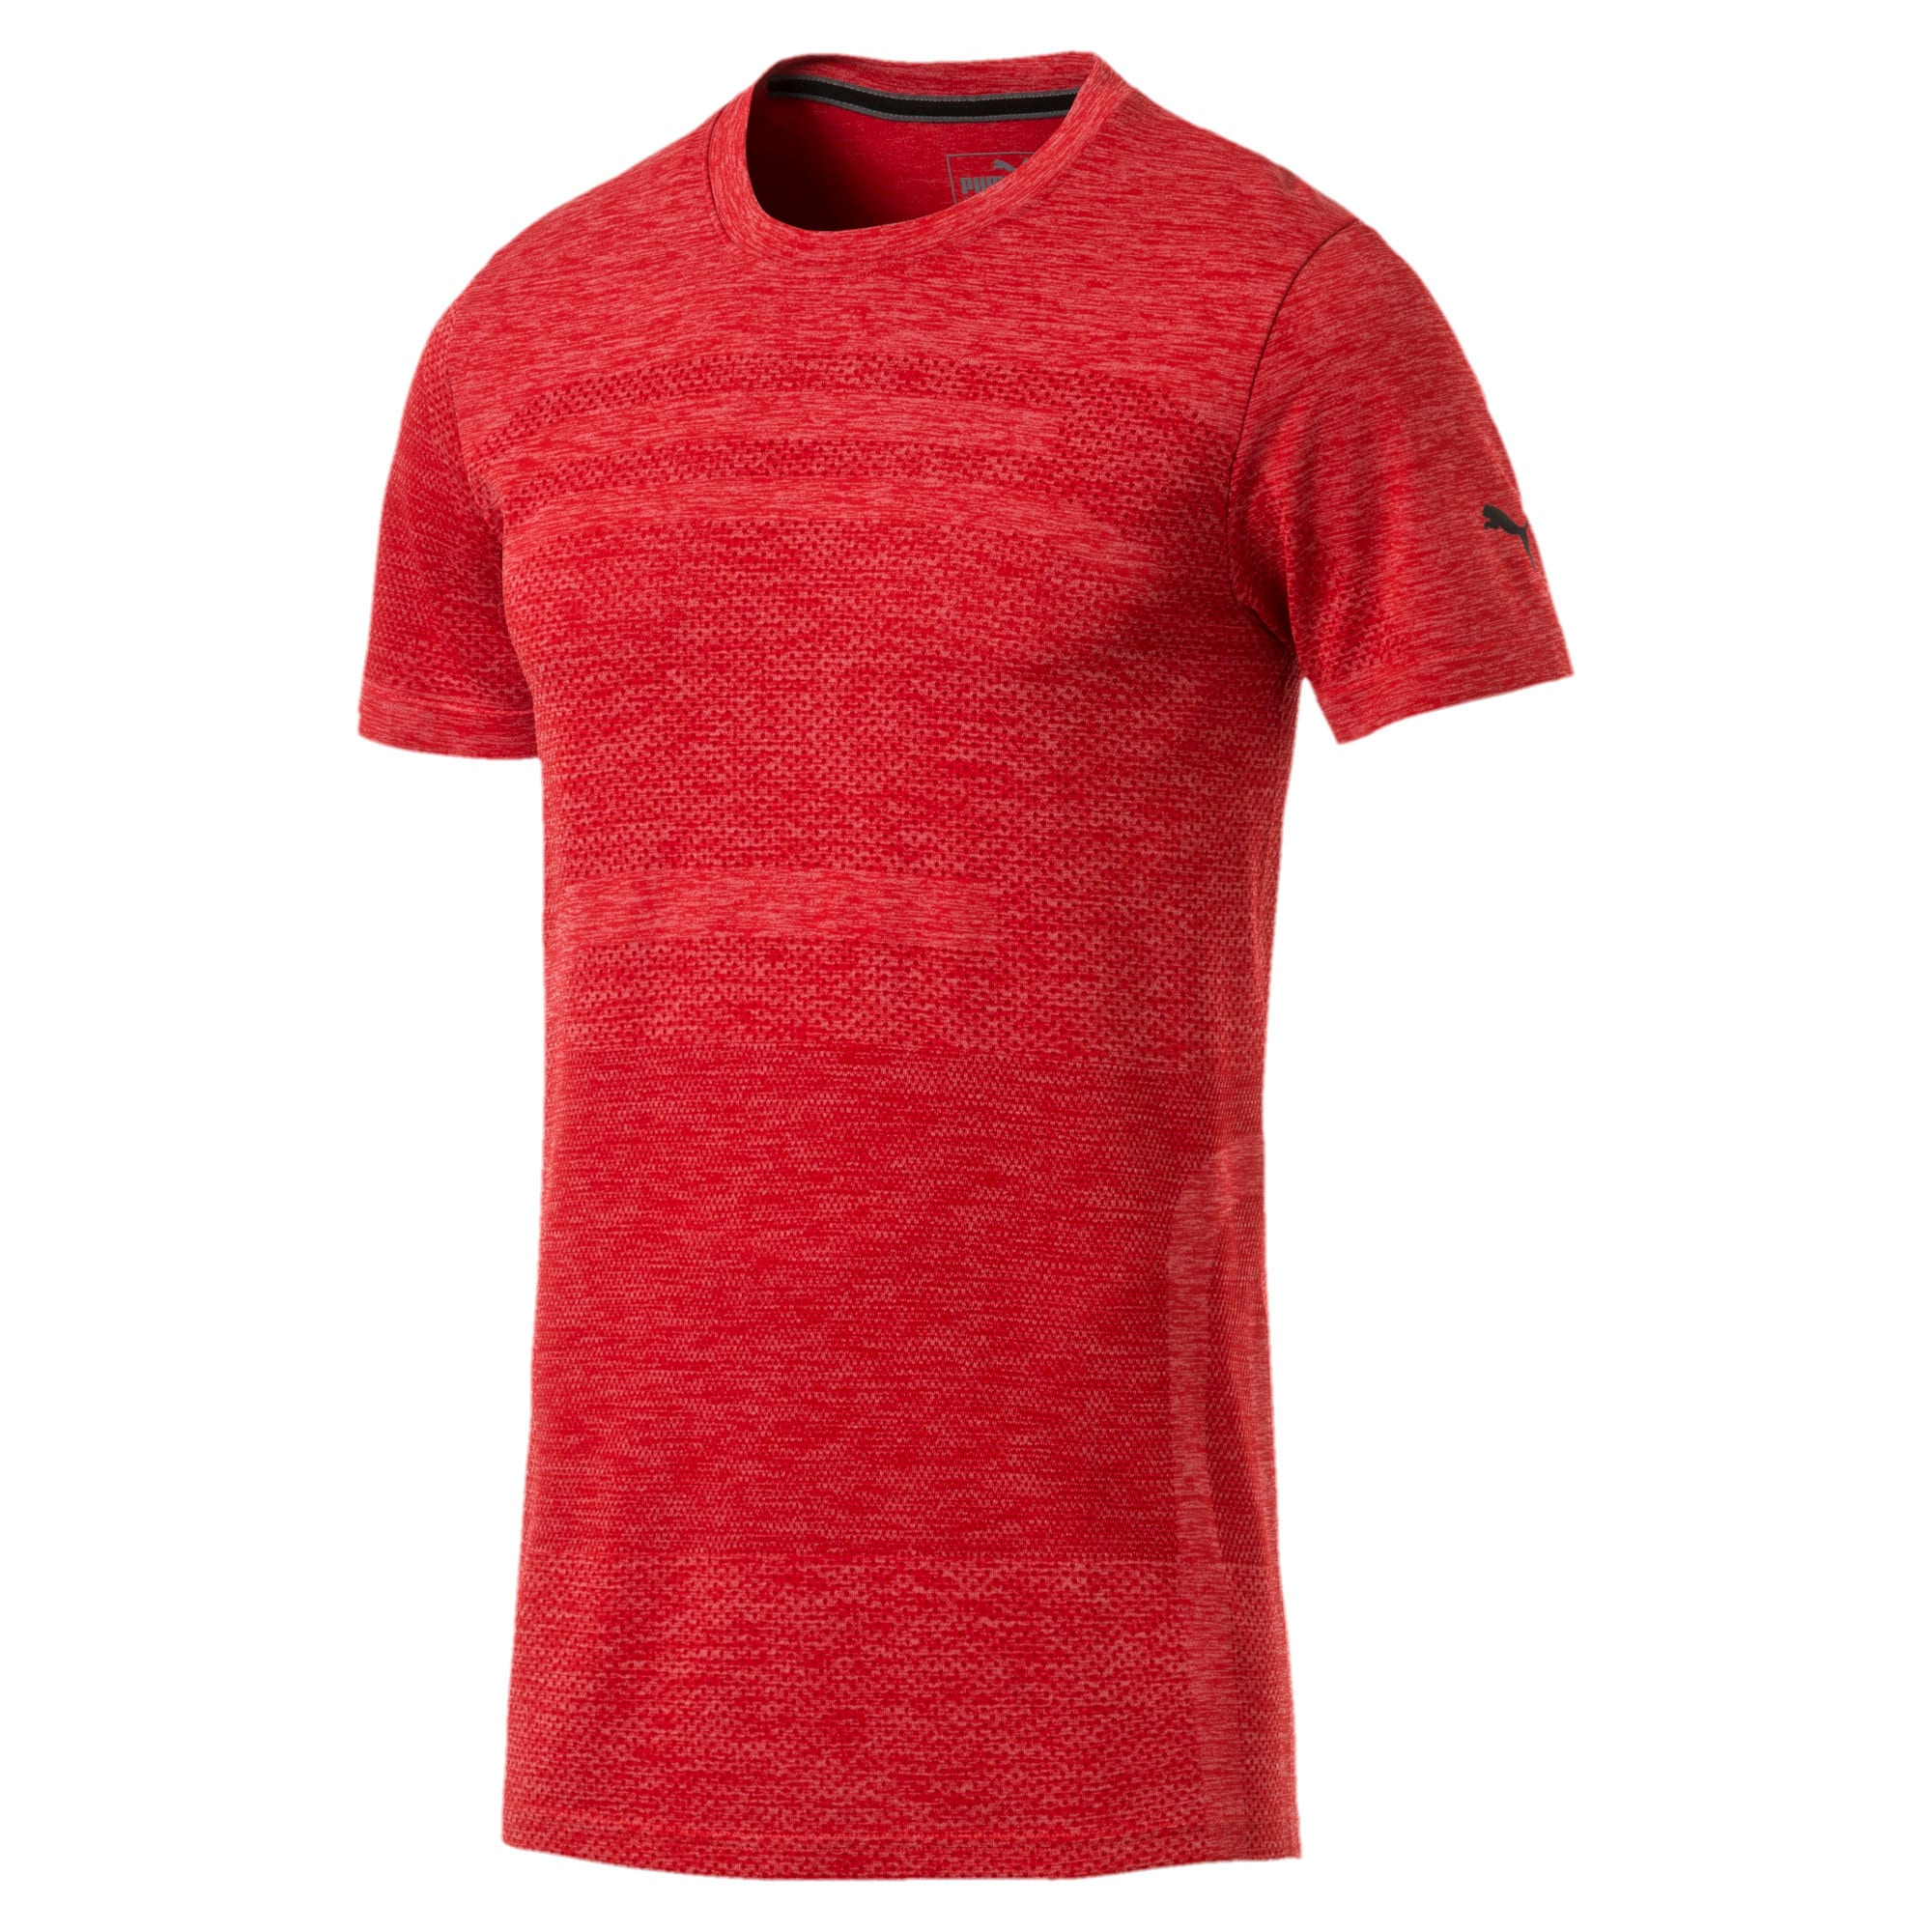 Thumbnail 4 of Ferrari evoKNIT Short Sleeve Men's Tee, Rosso Corsa, medium-IND